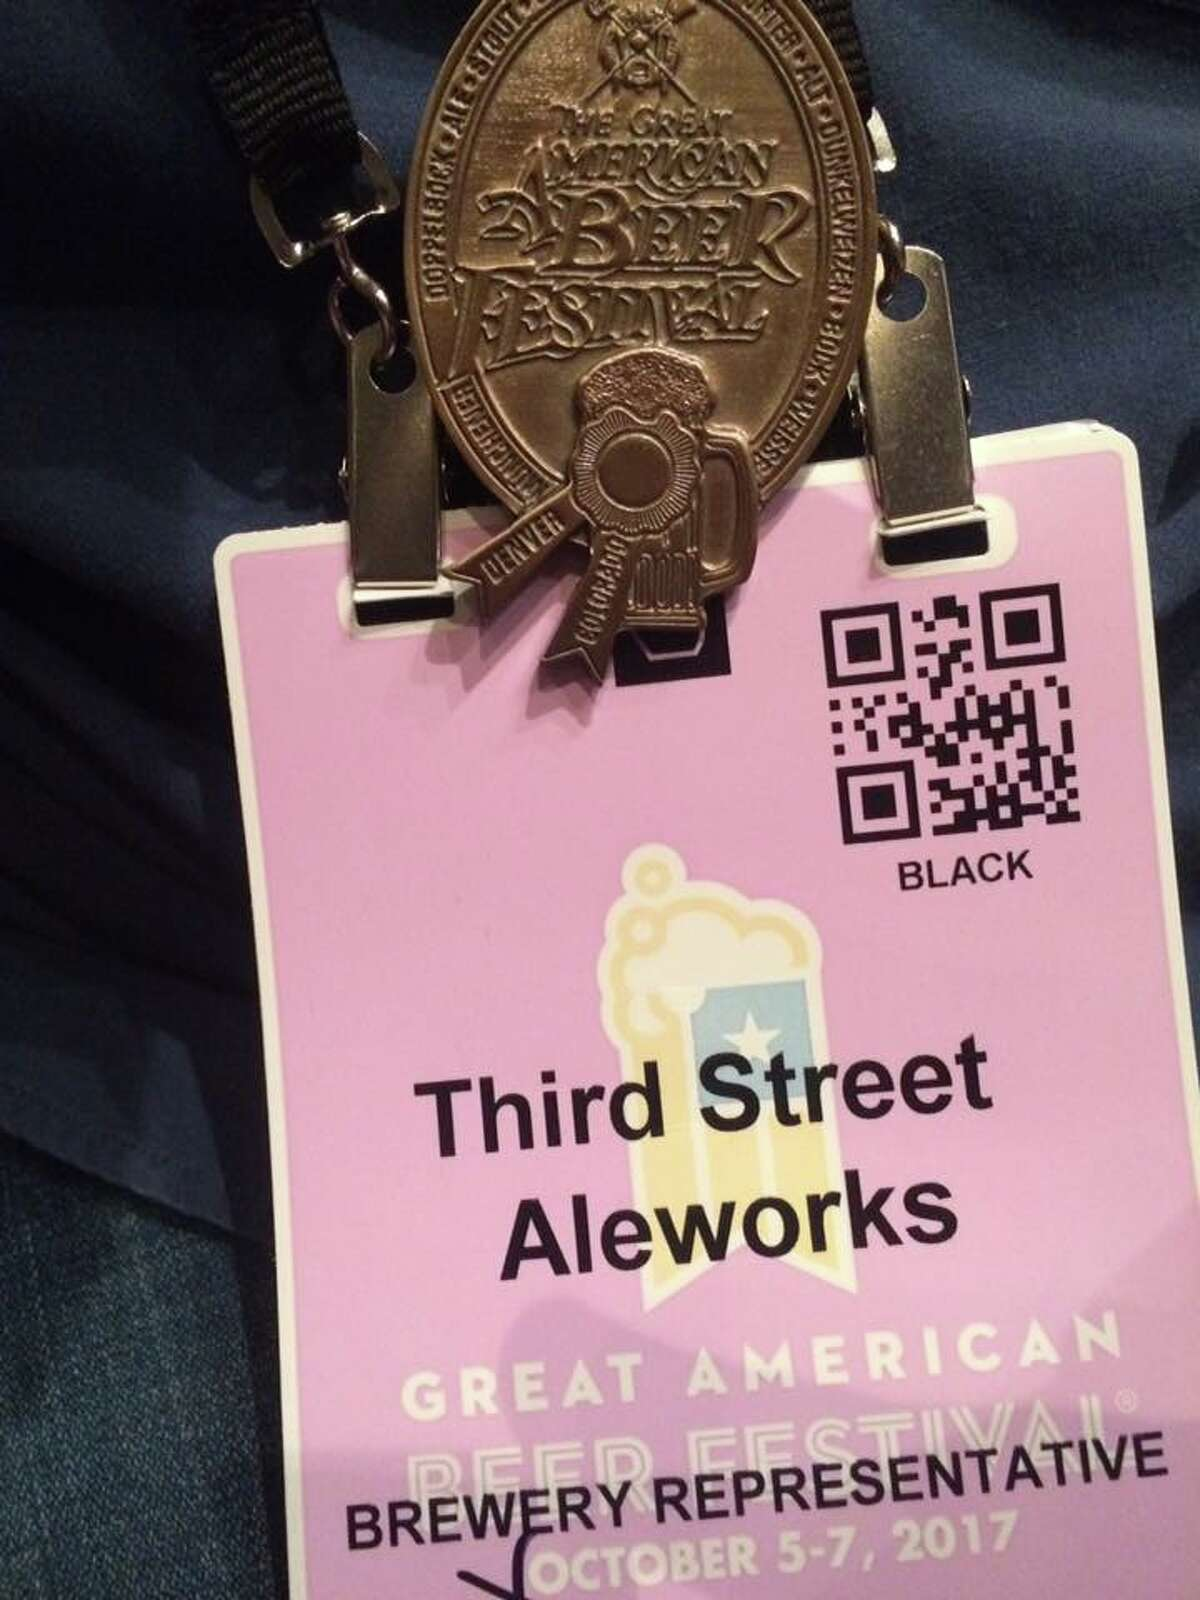 Third Street AleWorks took home a bronze medal from GABF in the category of Classic English-Style Pale Ale.